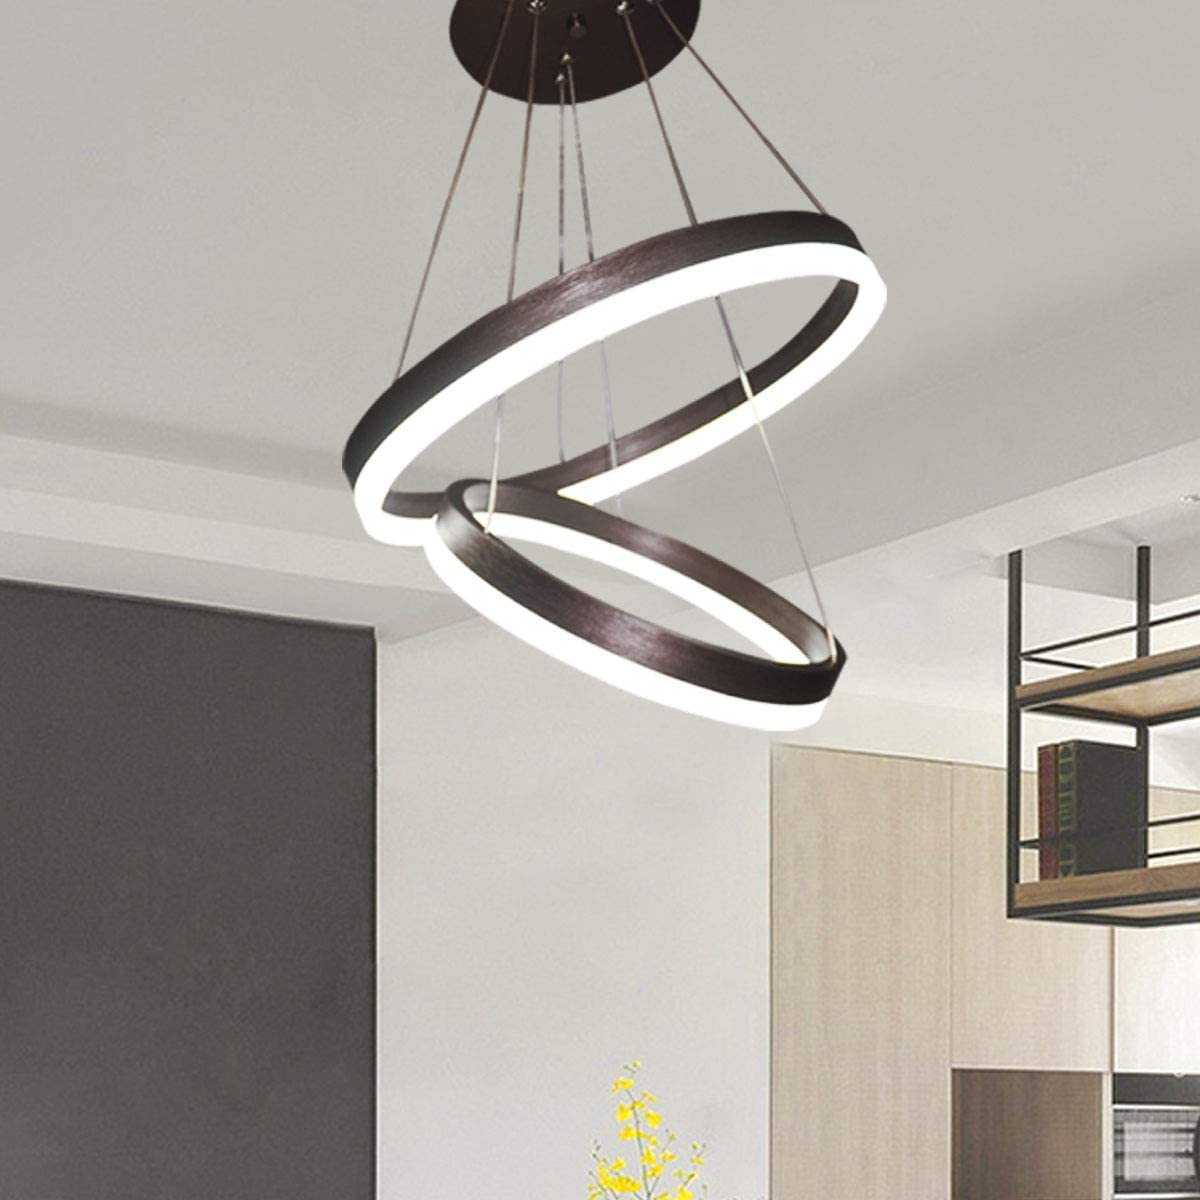 Jaycomey Modern LED Pendant Light,Circular Acrylic Chandelier Adjustable  Two Rings Ceiling Pendant Light for Living Room Bedroom Kitchen